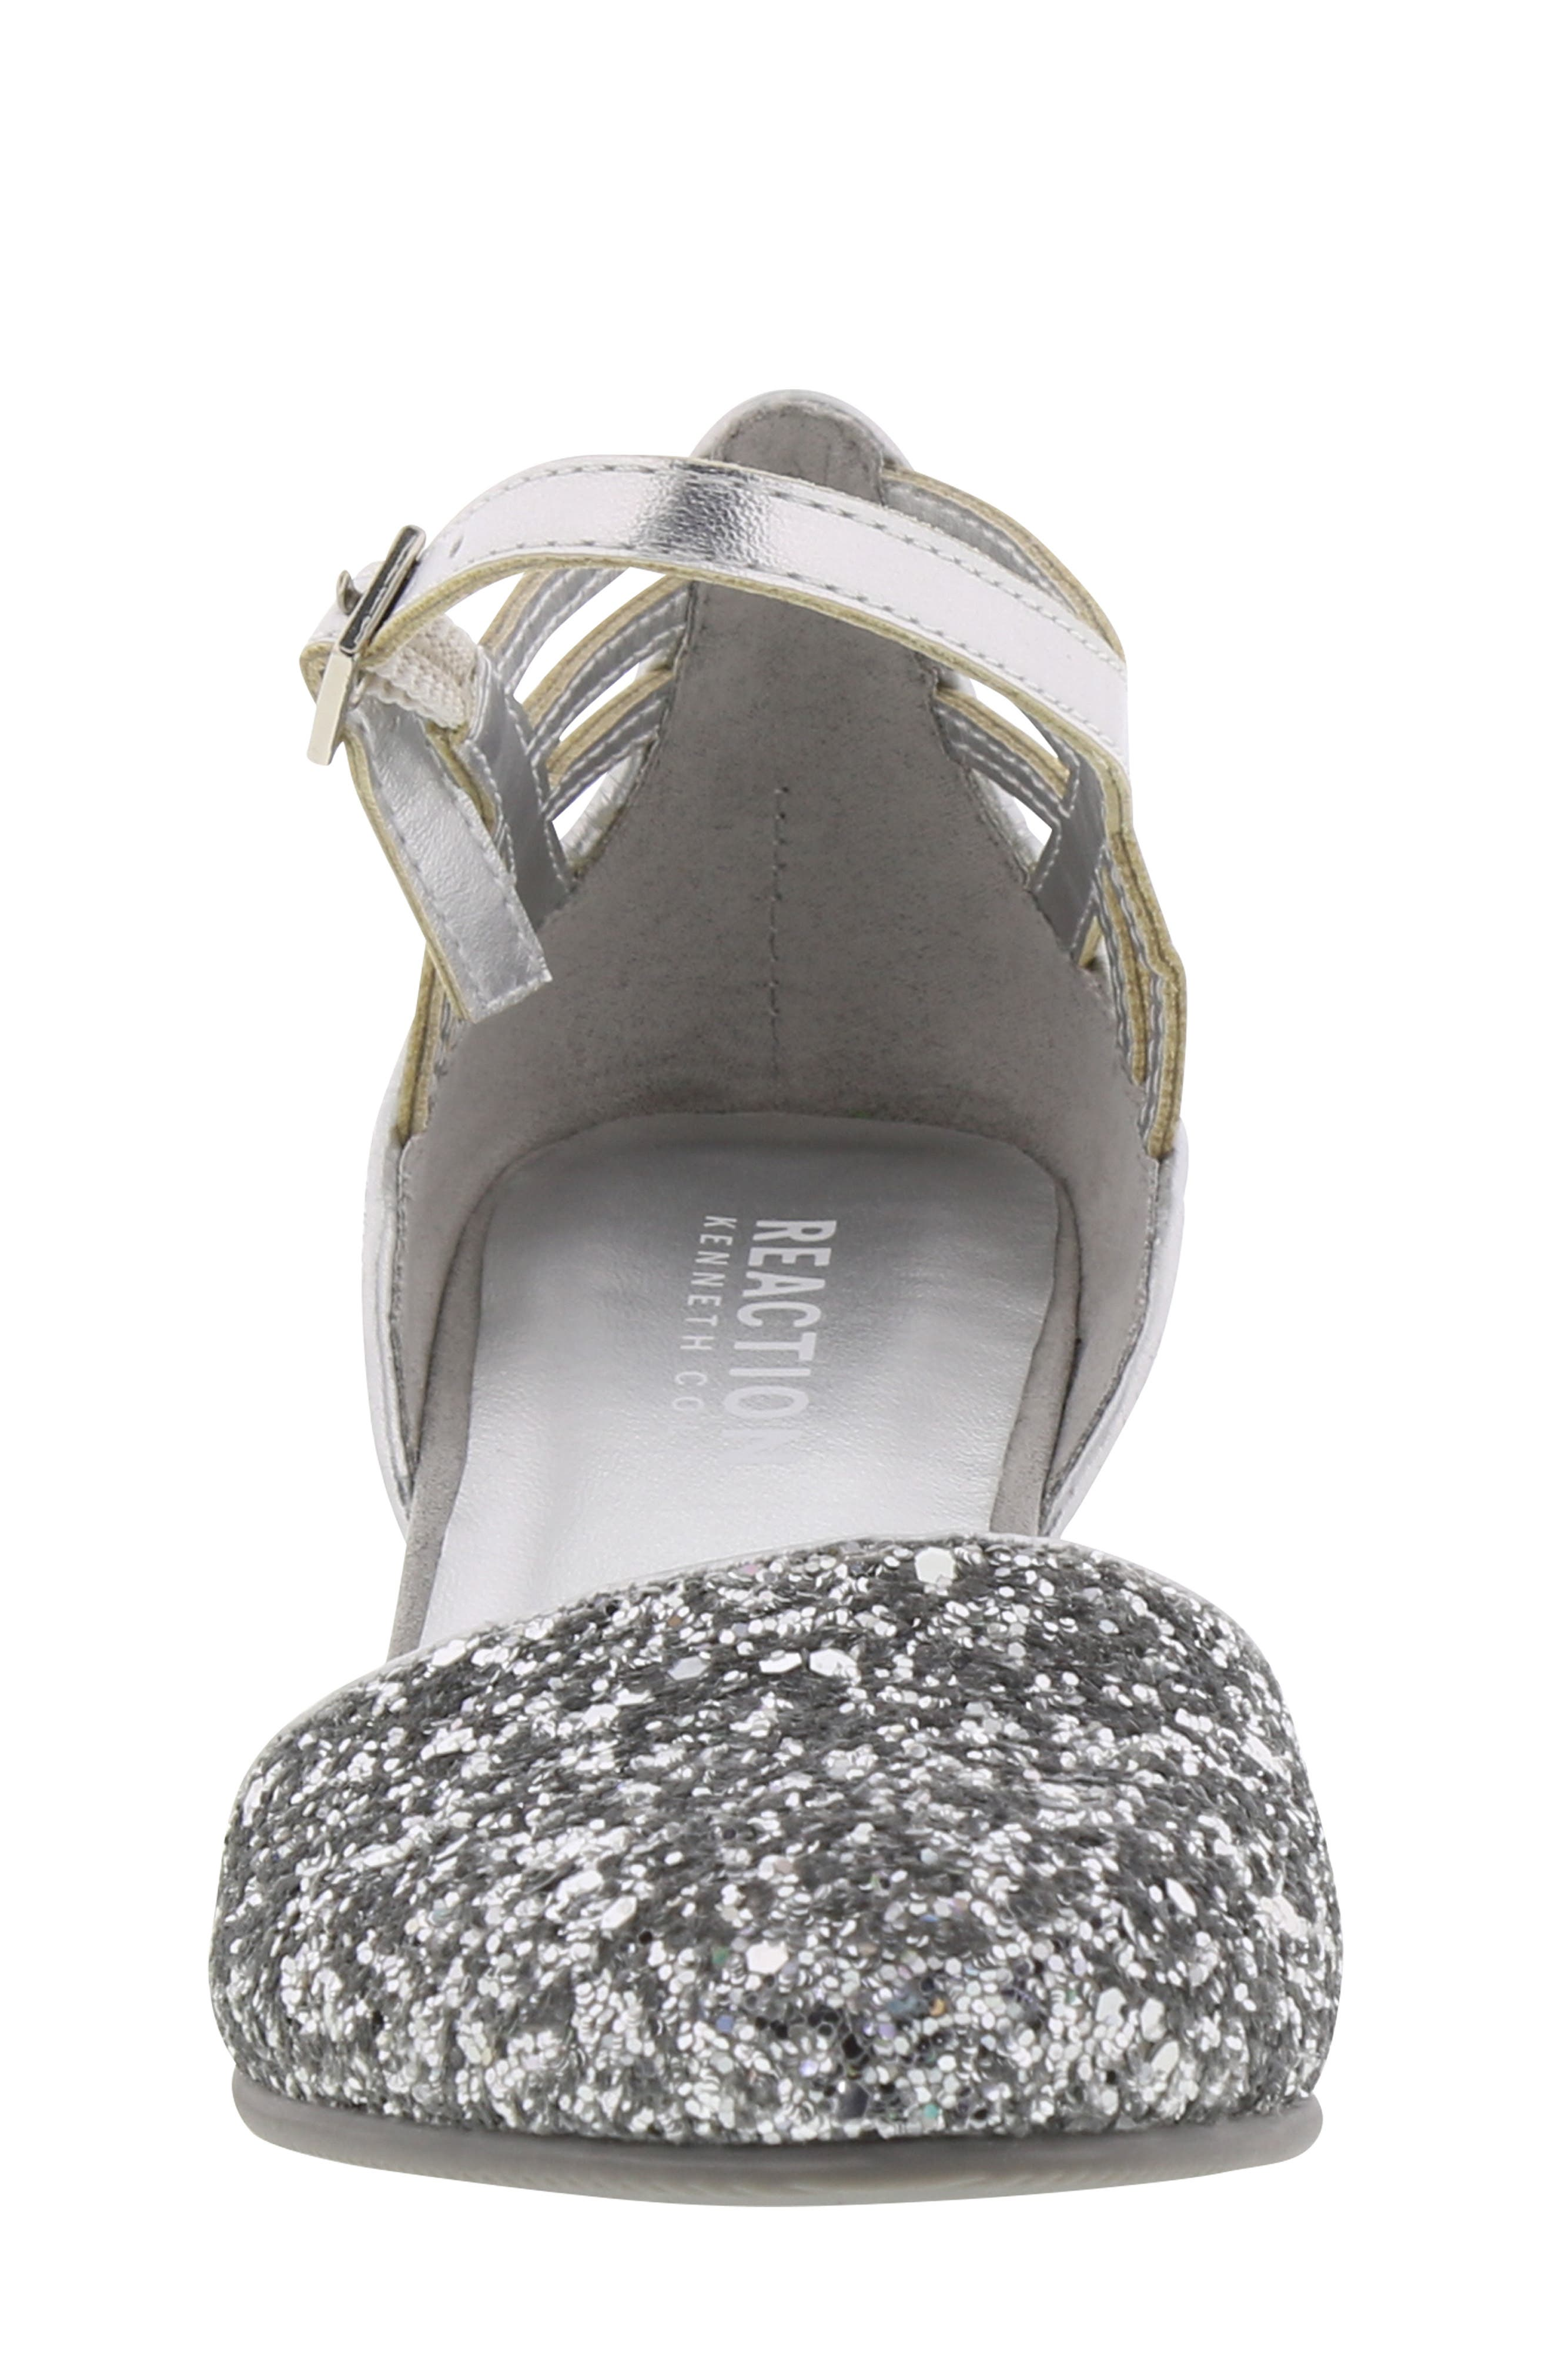 REACTION KENNETH COLE, Kenneth Cole New York Sarah Shine Pump, Alternate thumbnail 4, color, SILVER MULTI